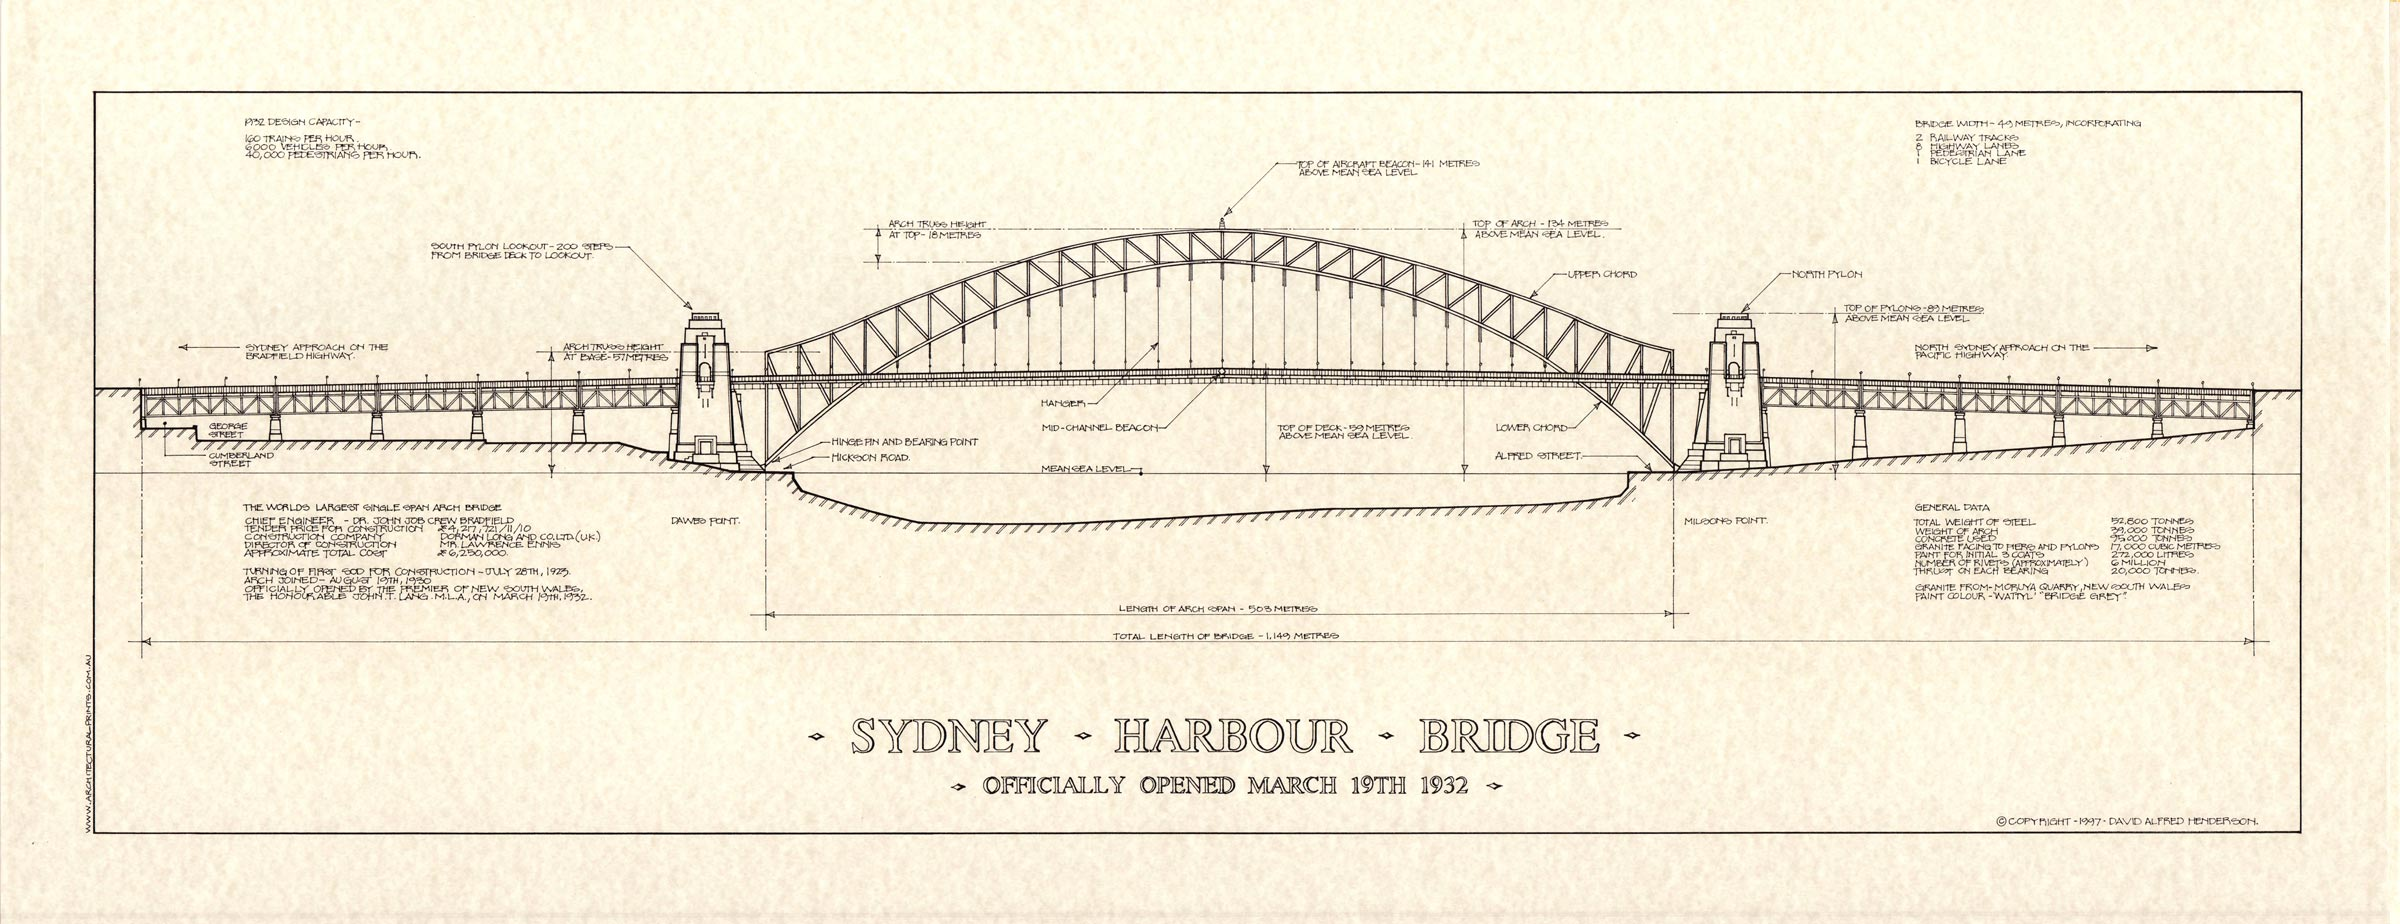 Sydney harbour bridge print architectural prints for Printing architectural drawings